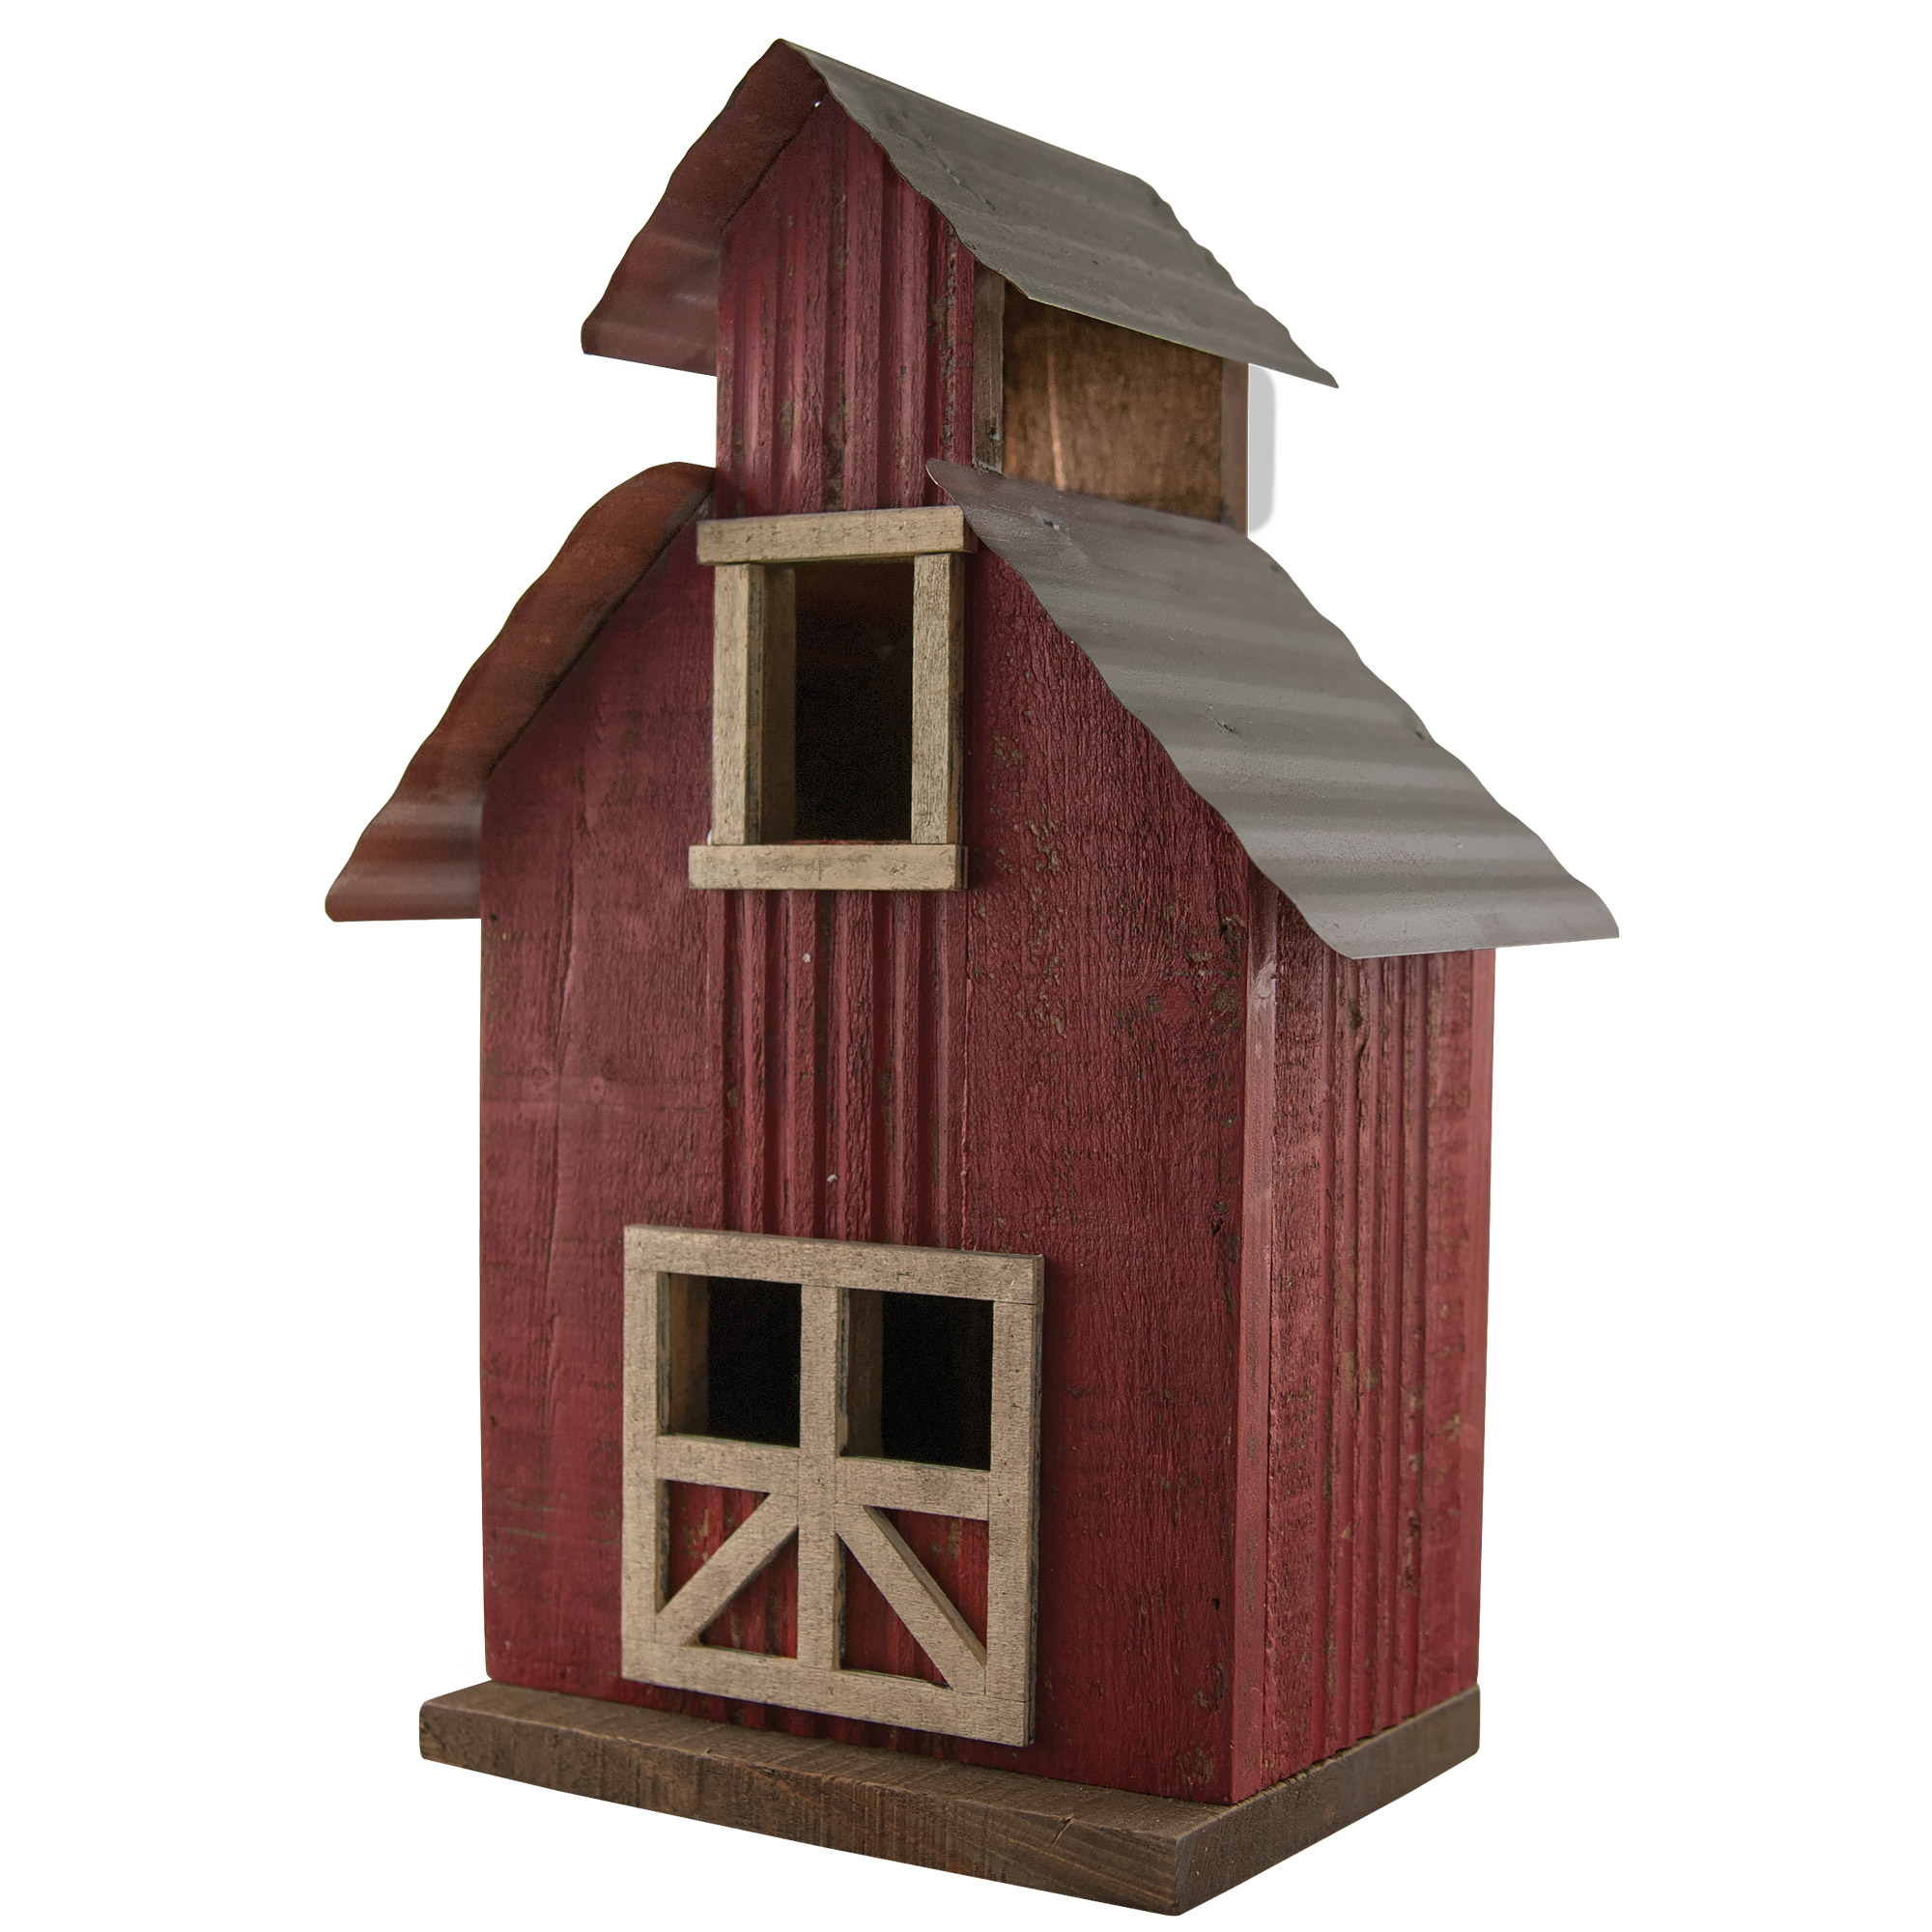 HRS-33138-Barn-Birdhouse-LRG